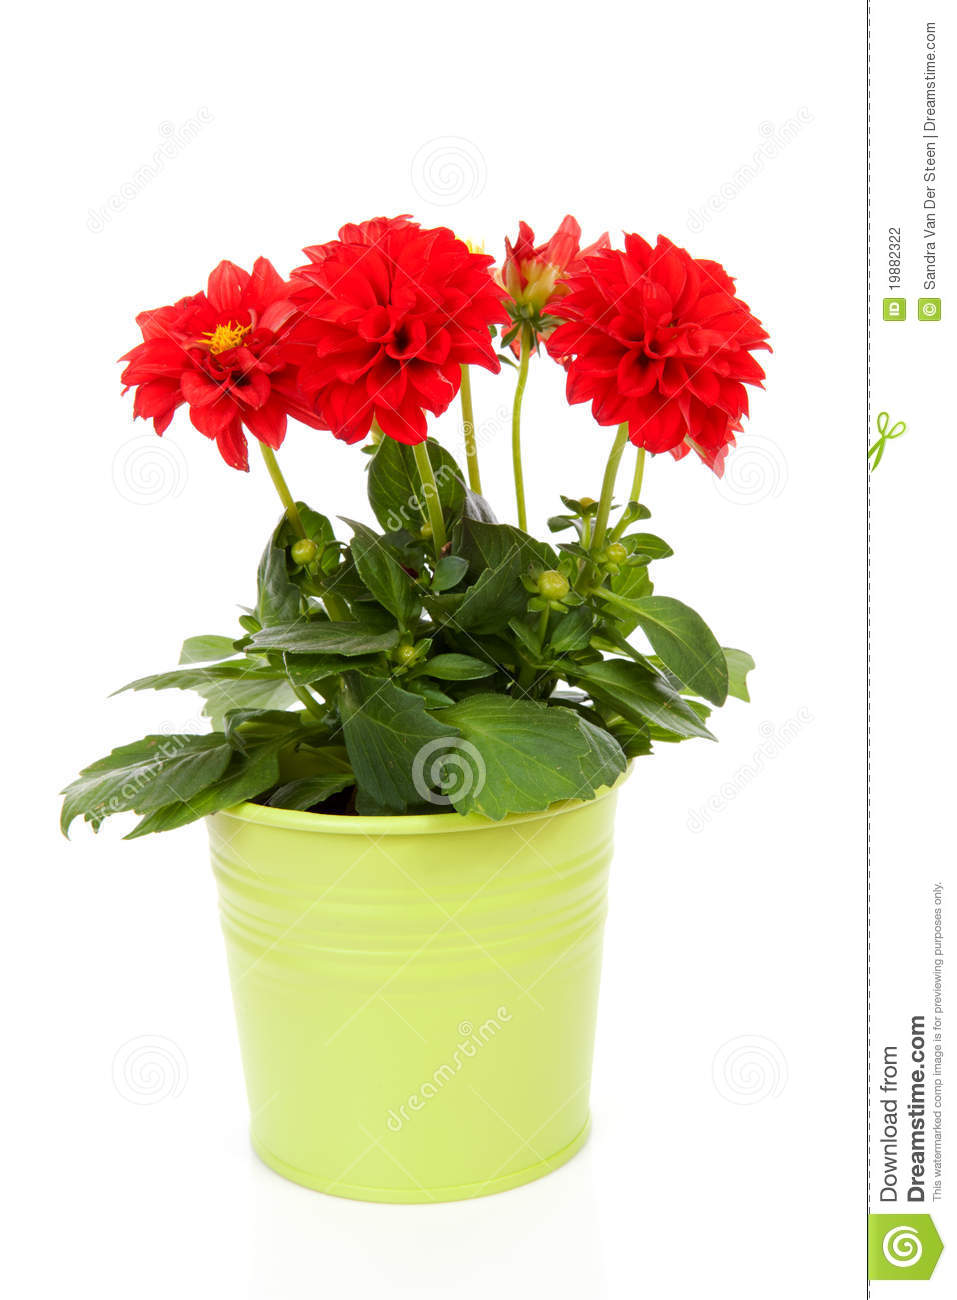 Red Dahlia Flower In Green Pot Stock Photo Image Of Isolated Bloom 19882322